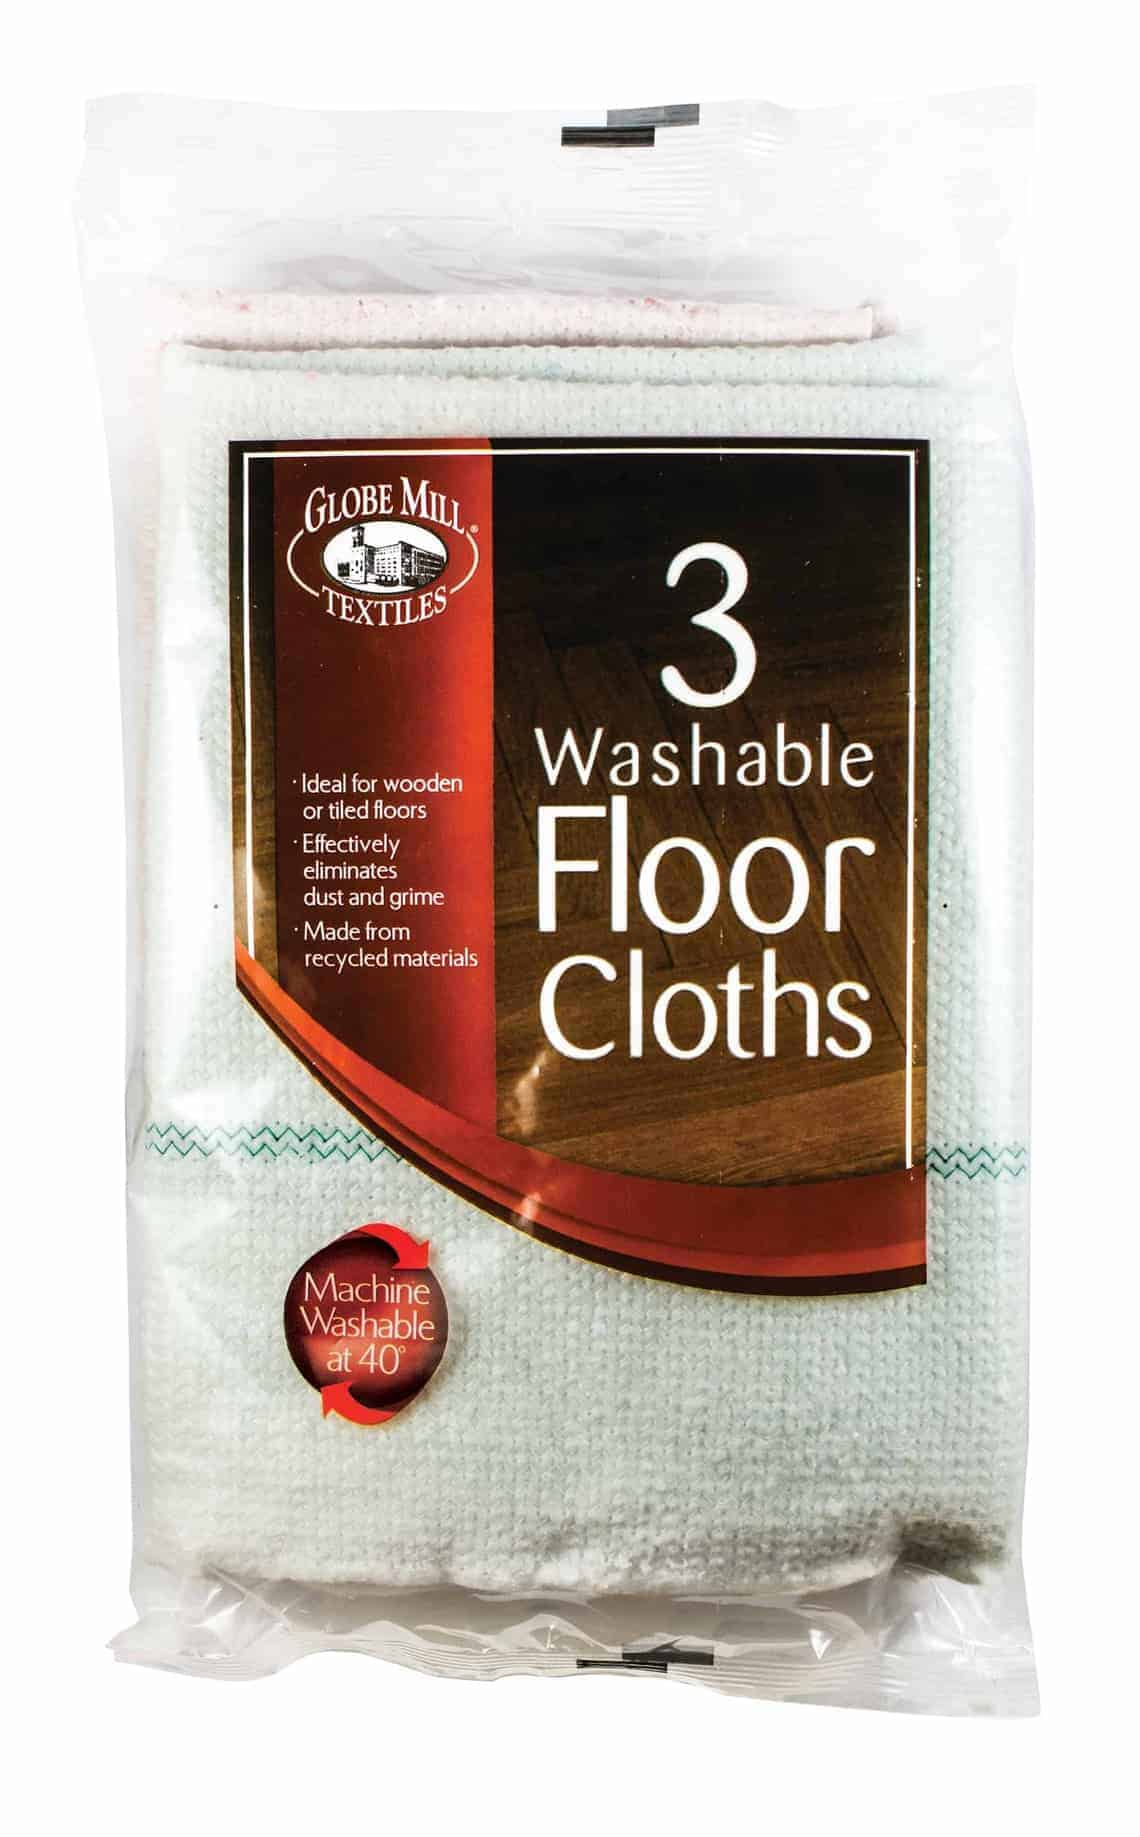 Globe Mill 3pk Floor Cloths